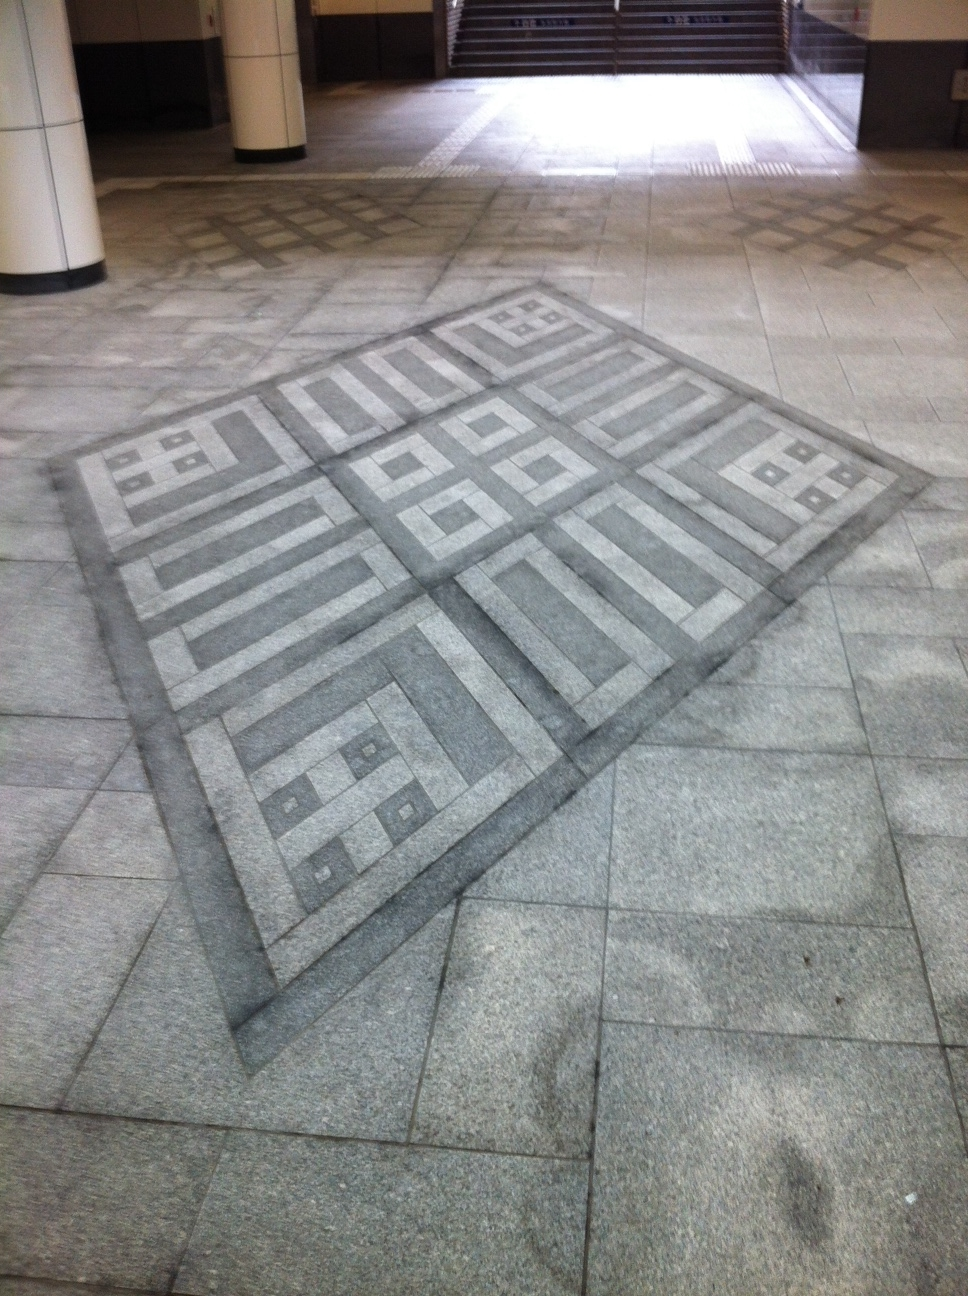 Koginzashi design on the floor of a tunnel that leads under an intersection in front of the train station.